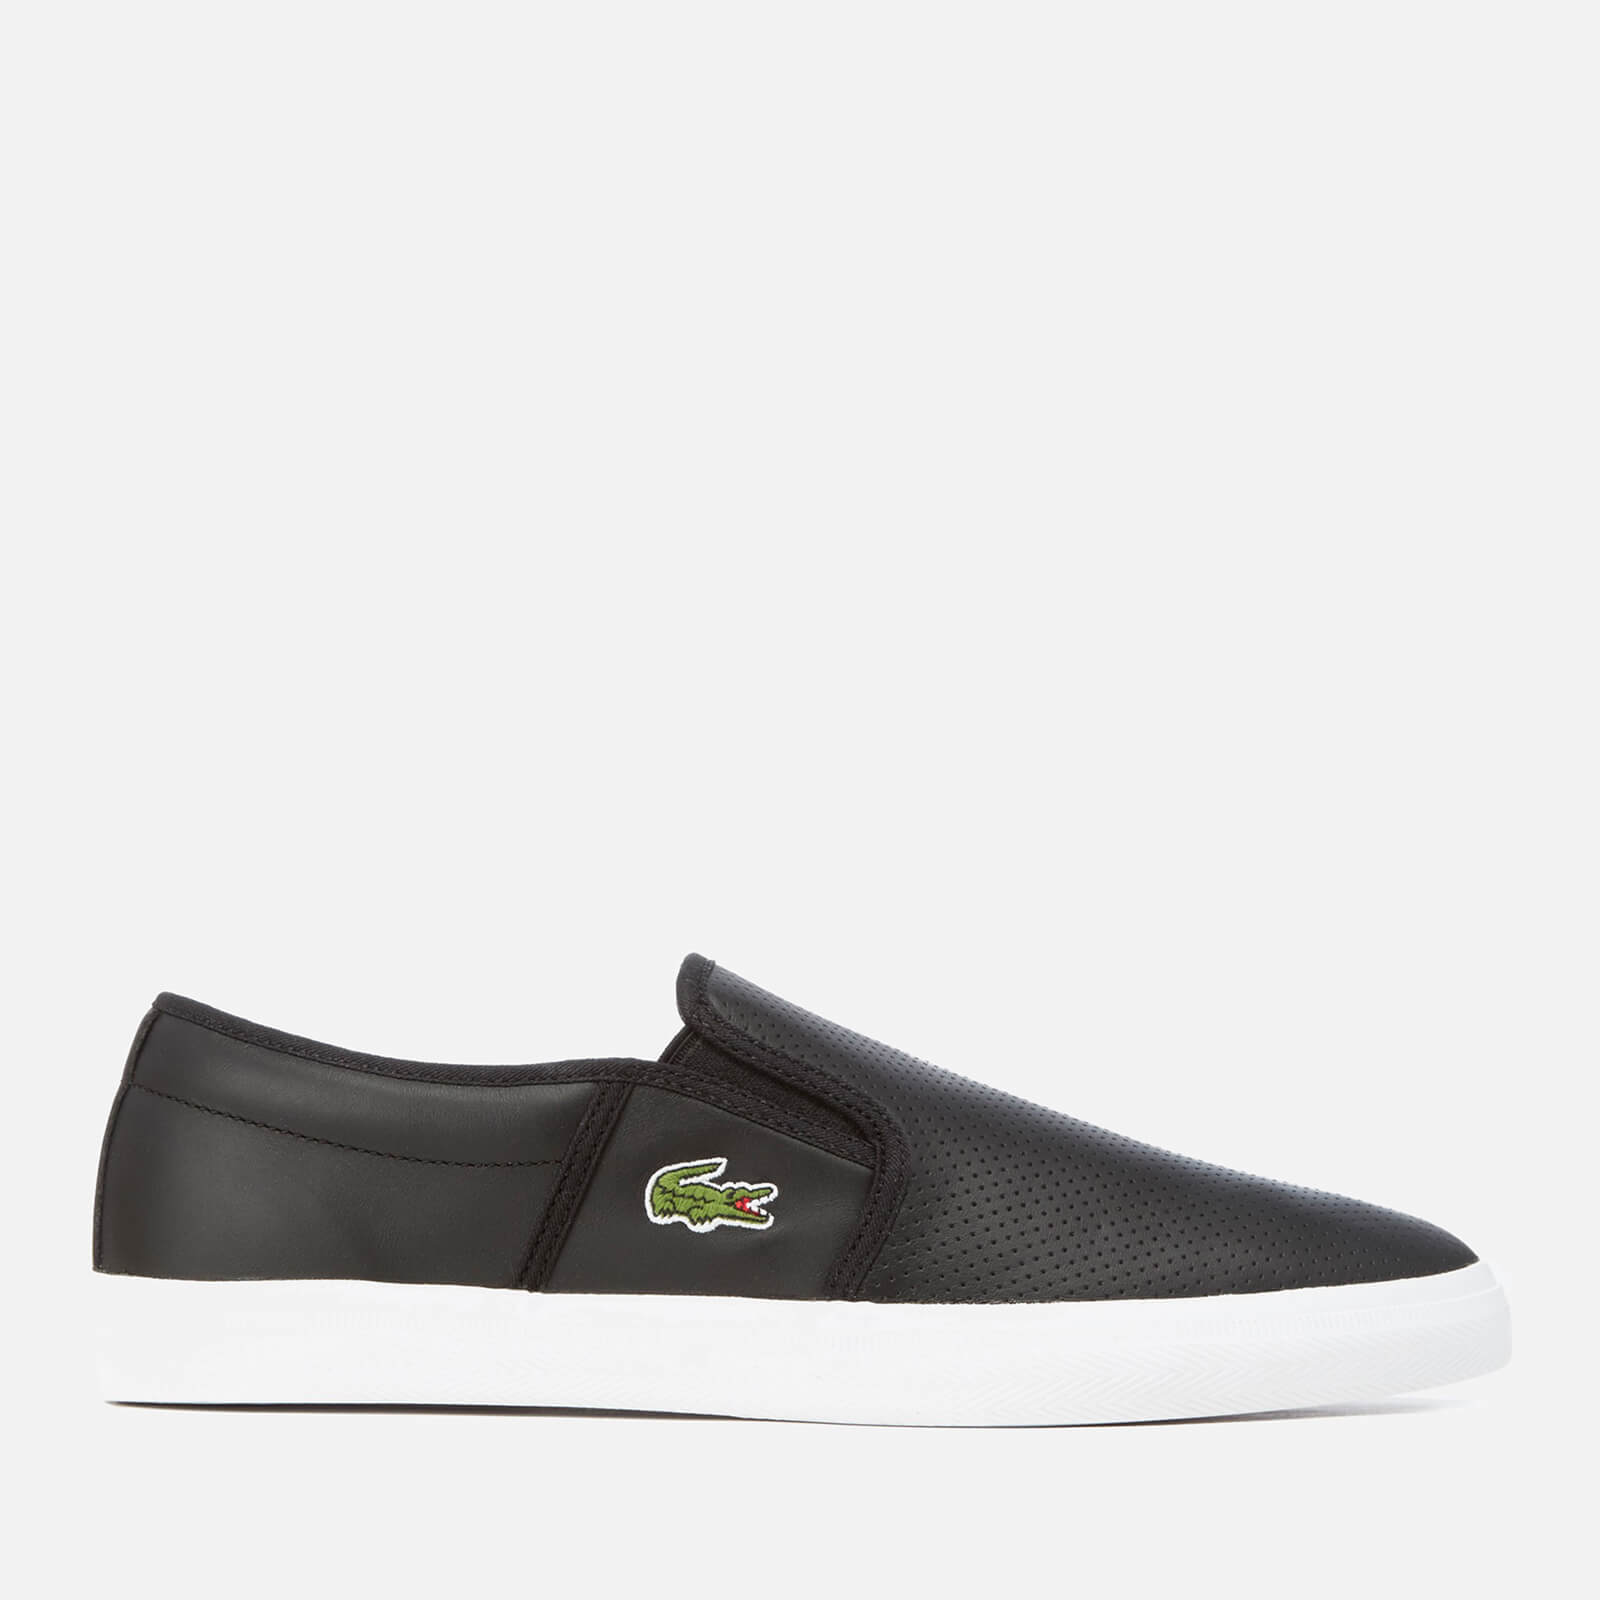 600ddd66ea Lacoste Men's Gazon Bl 1 Leather Slip-On Trainers - Black